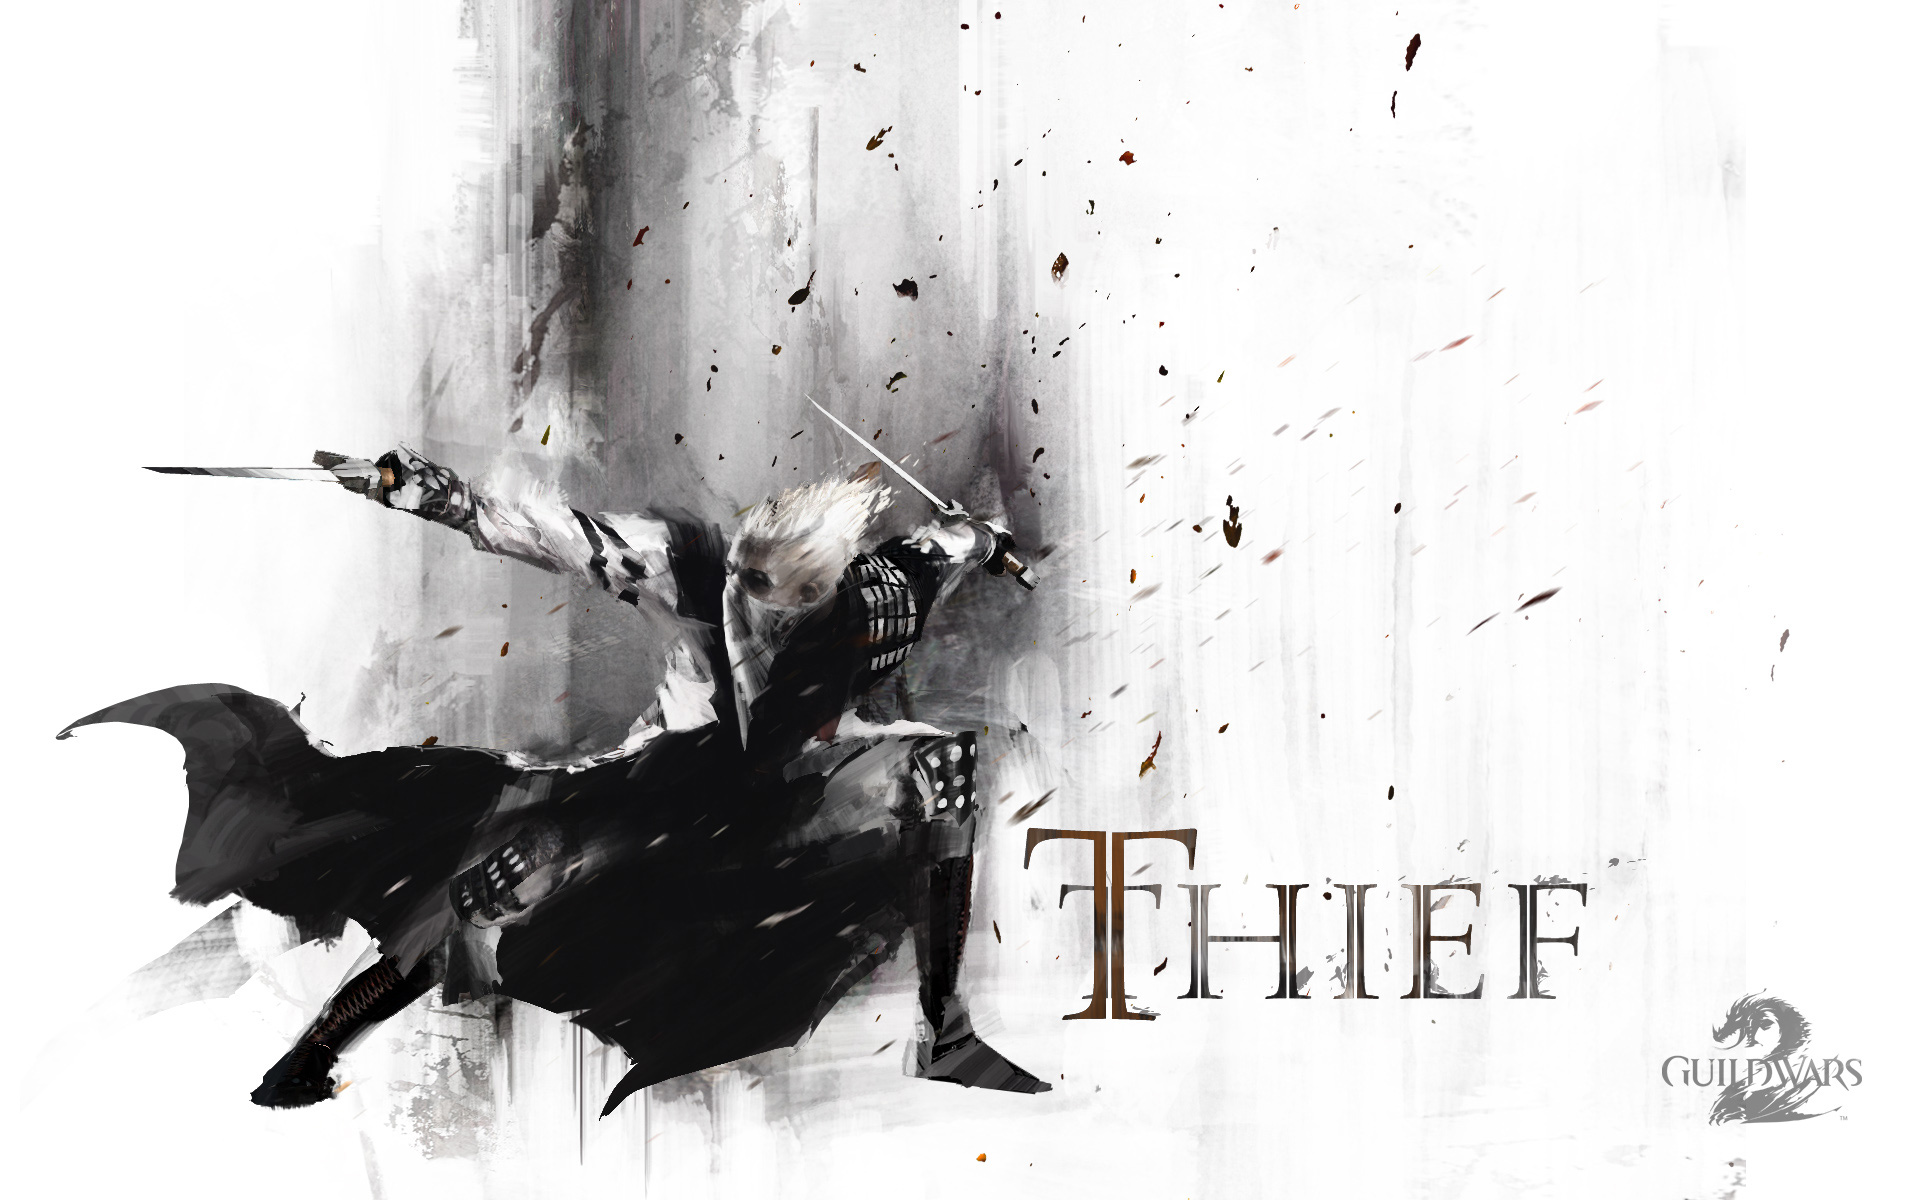 GW2 Thief Wallpaper 1920x1200